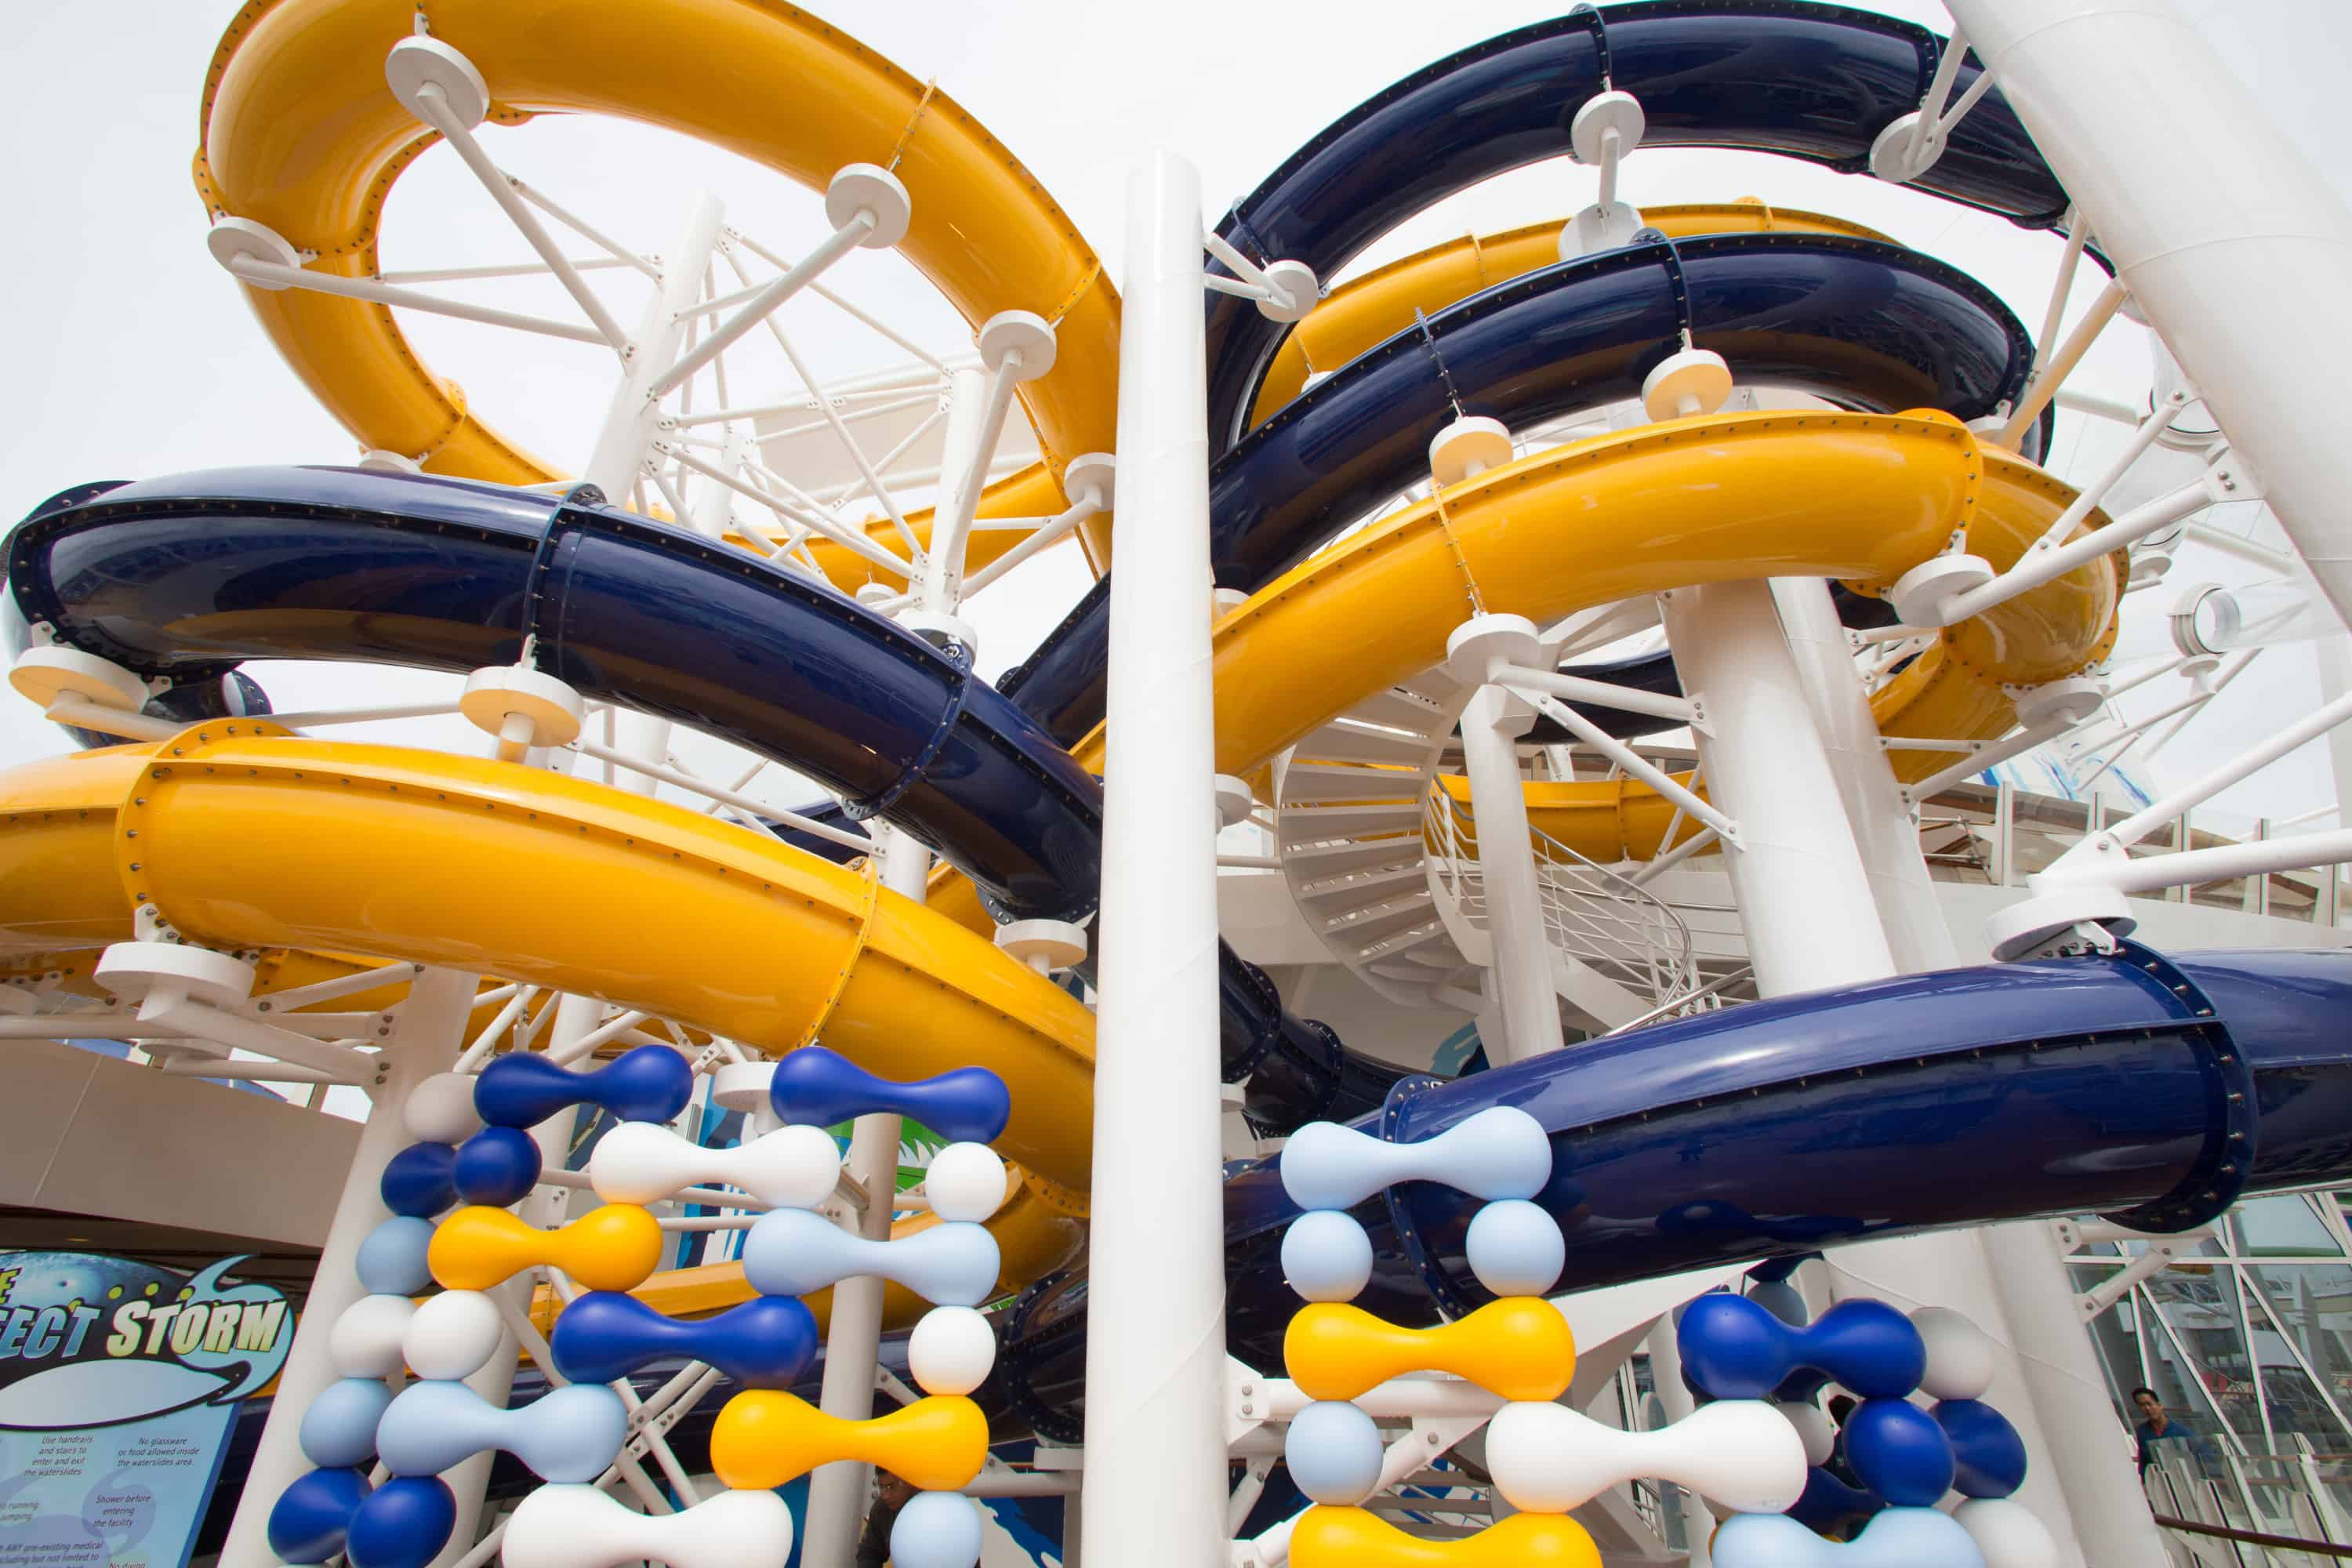 Royal Caribbean International's Harmony of the Seas, the world's largest and newest cruise ship, previews in Southampton, UK. The Perfect Storm water slide.